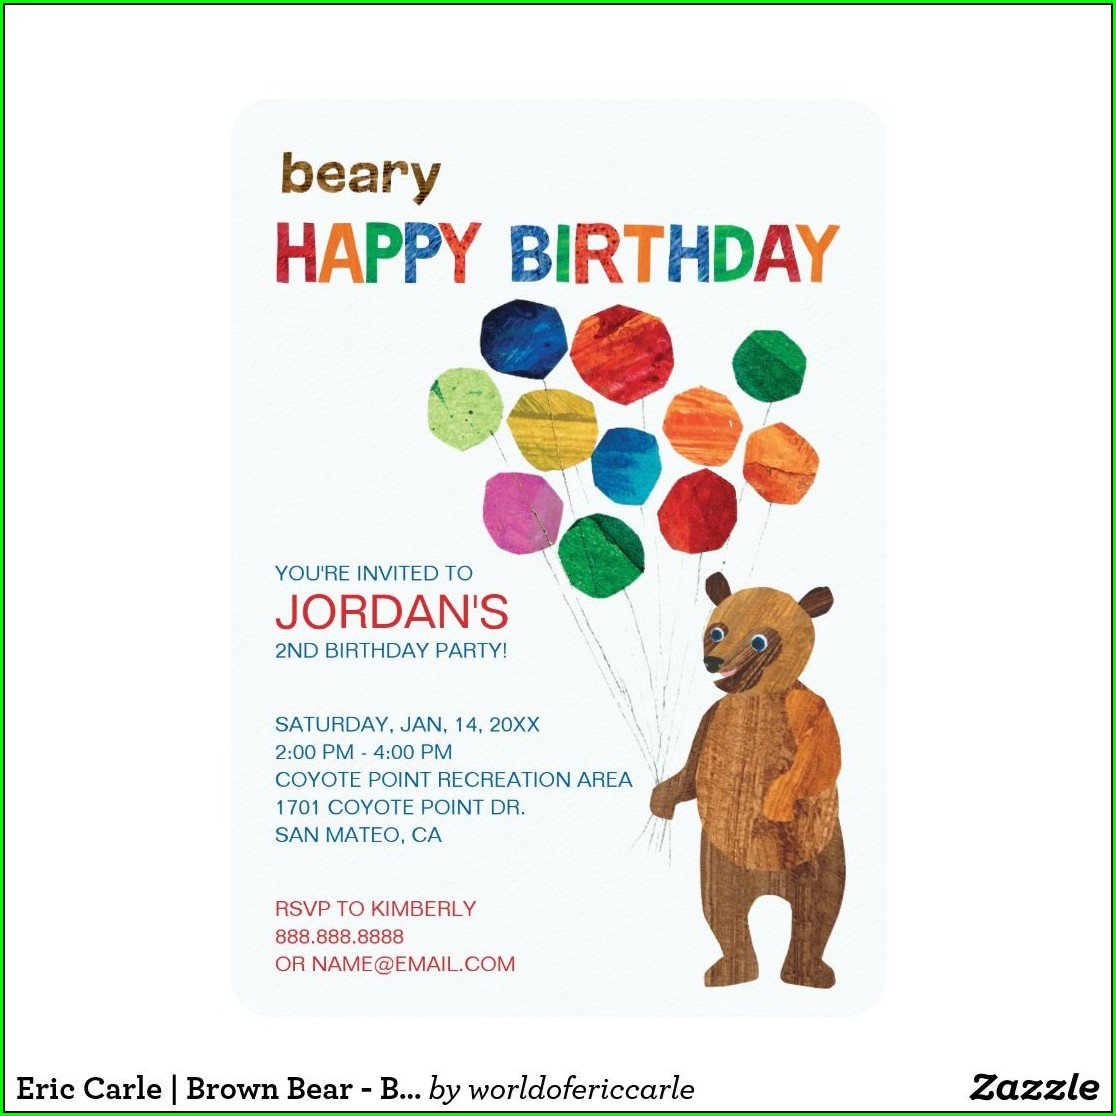 Eric Carle Brown Bear Invitations